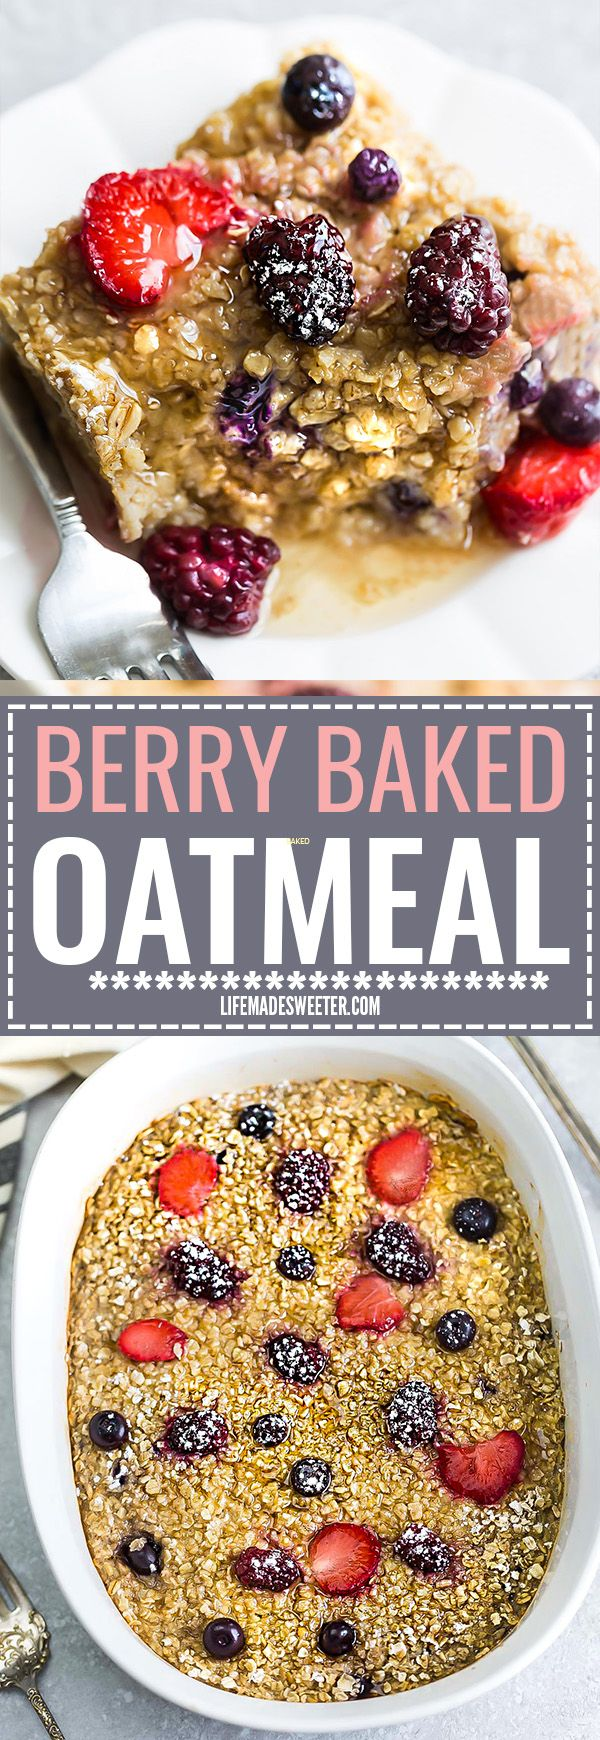 Berry Baked Oatmeal makes the perfect easy make-ahead healthy breakfast. Best of all, this recipe is made with no refined sugar, gluten free and dairy free and just 10 minutes of prep time using ONE bowl!